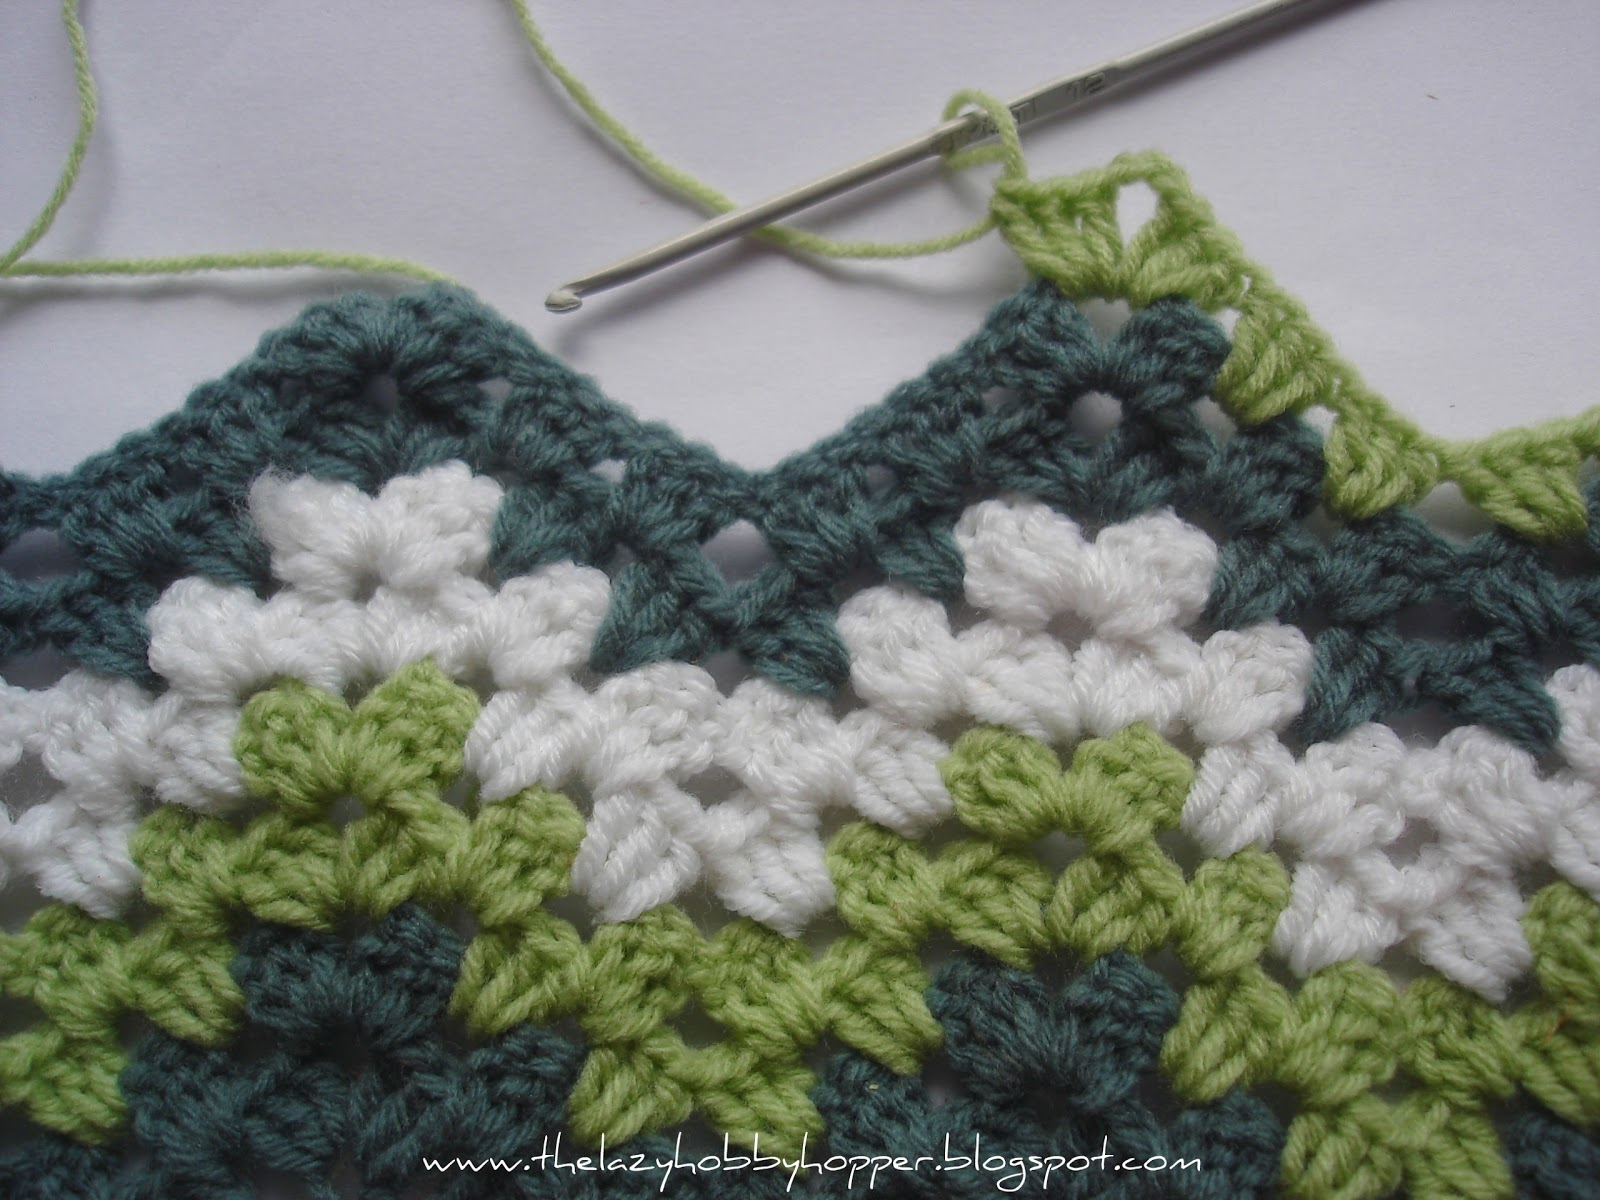 Crochet Tutorial Zigzag : ... many of you who can crochet fairly well may not know how to crochet a